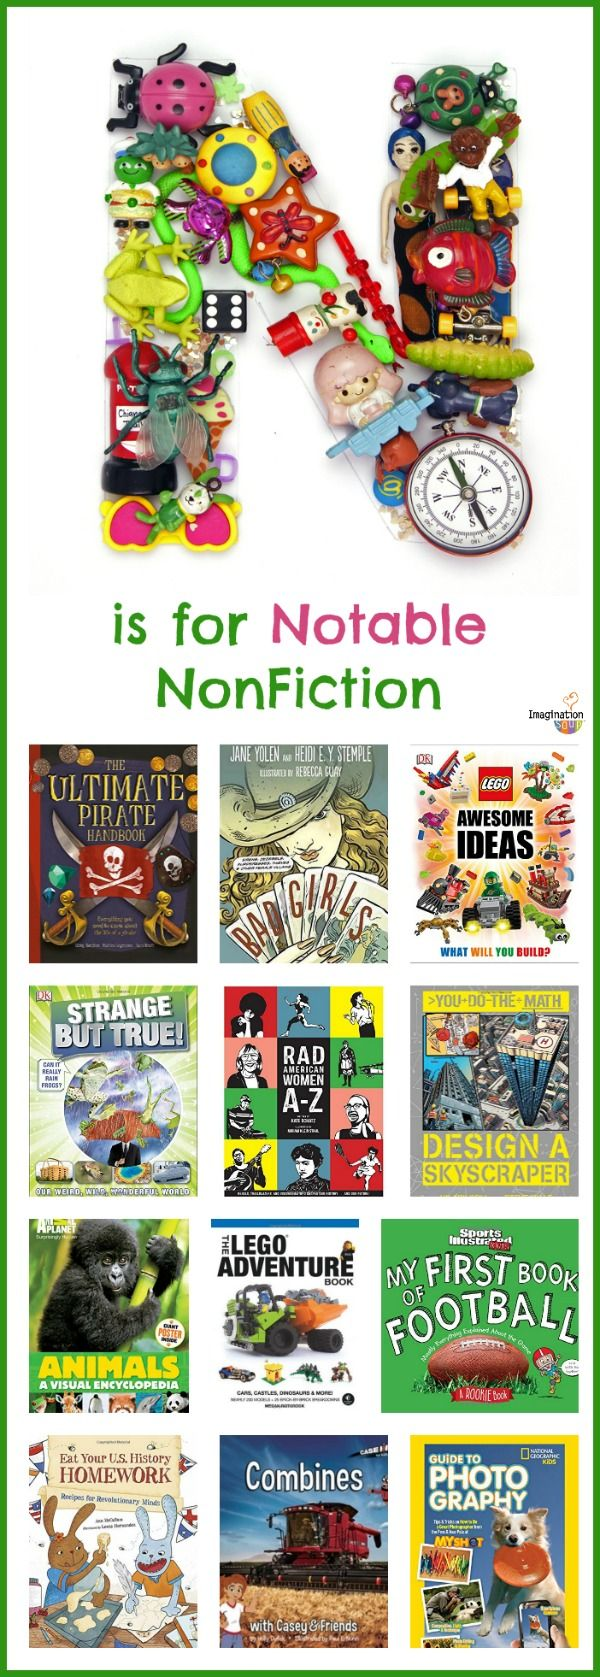 roundup of new excellent nonfiction books for kids (these would make great gifts, too!)